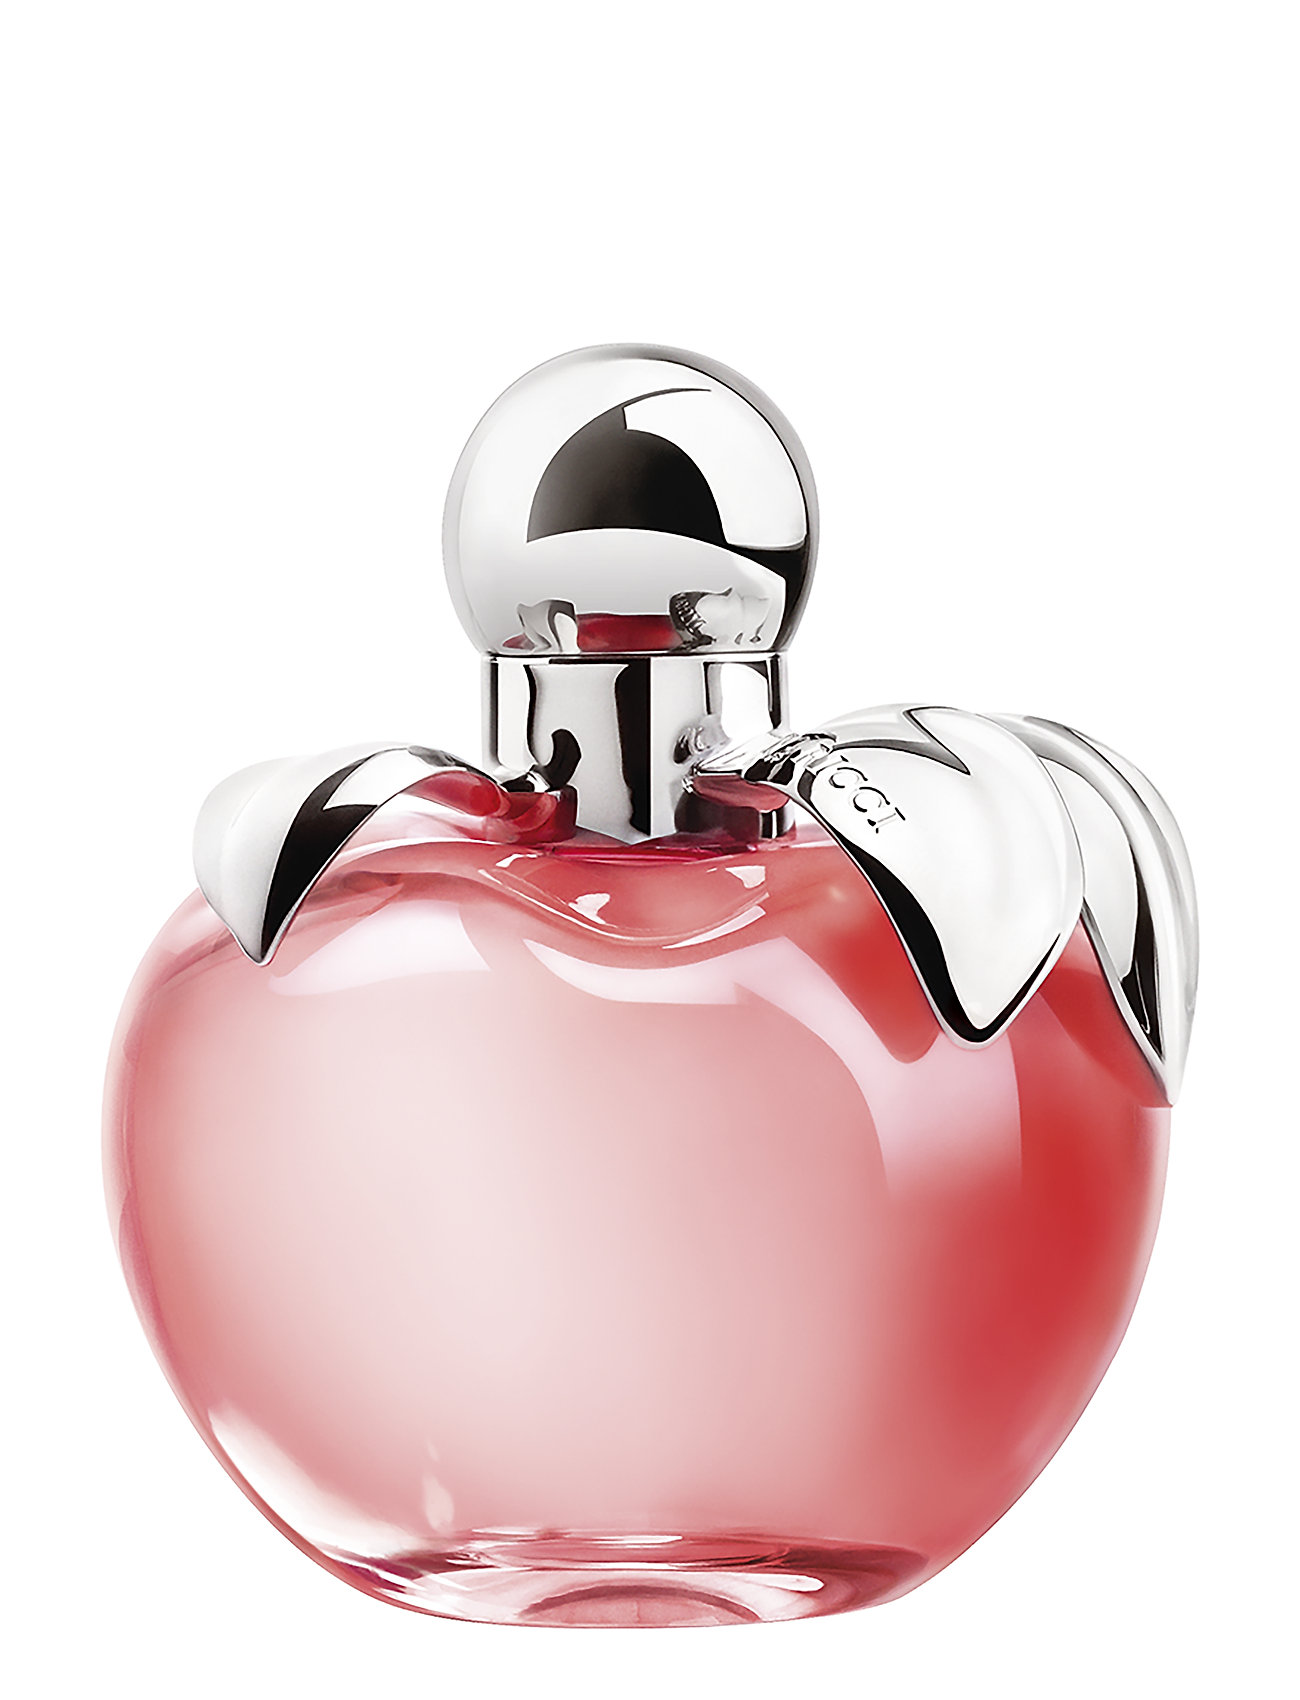 Nina Ricci NINA EAU DE TOILETTE - NO COLOR